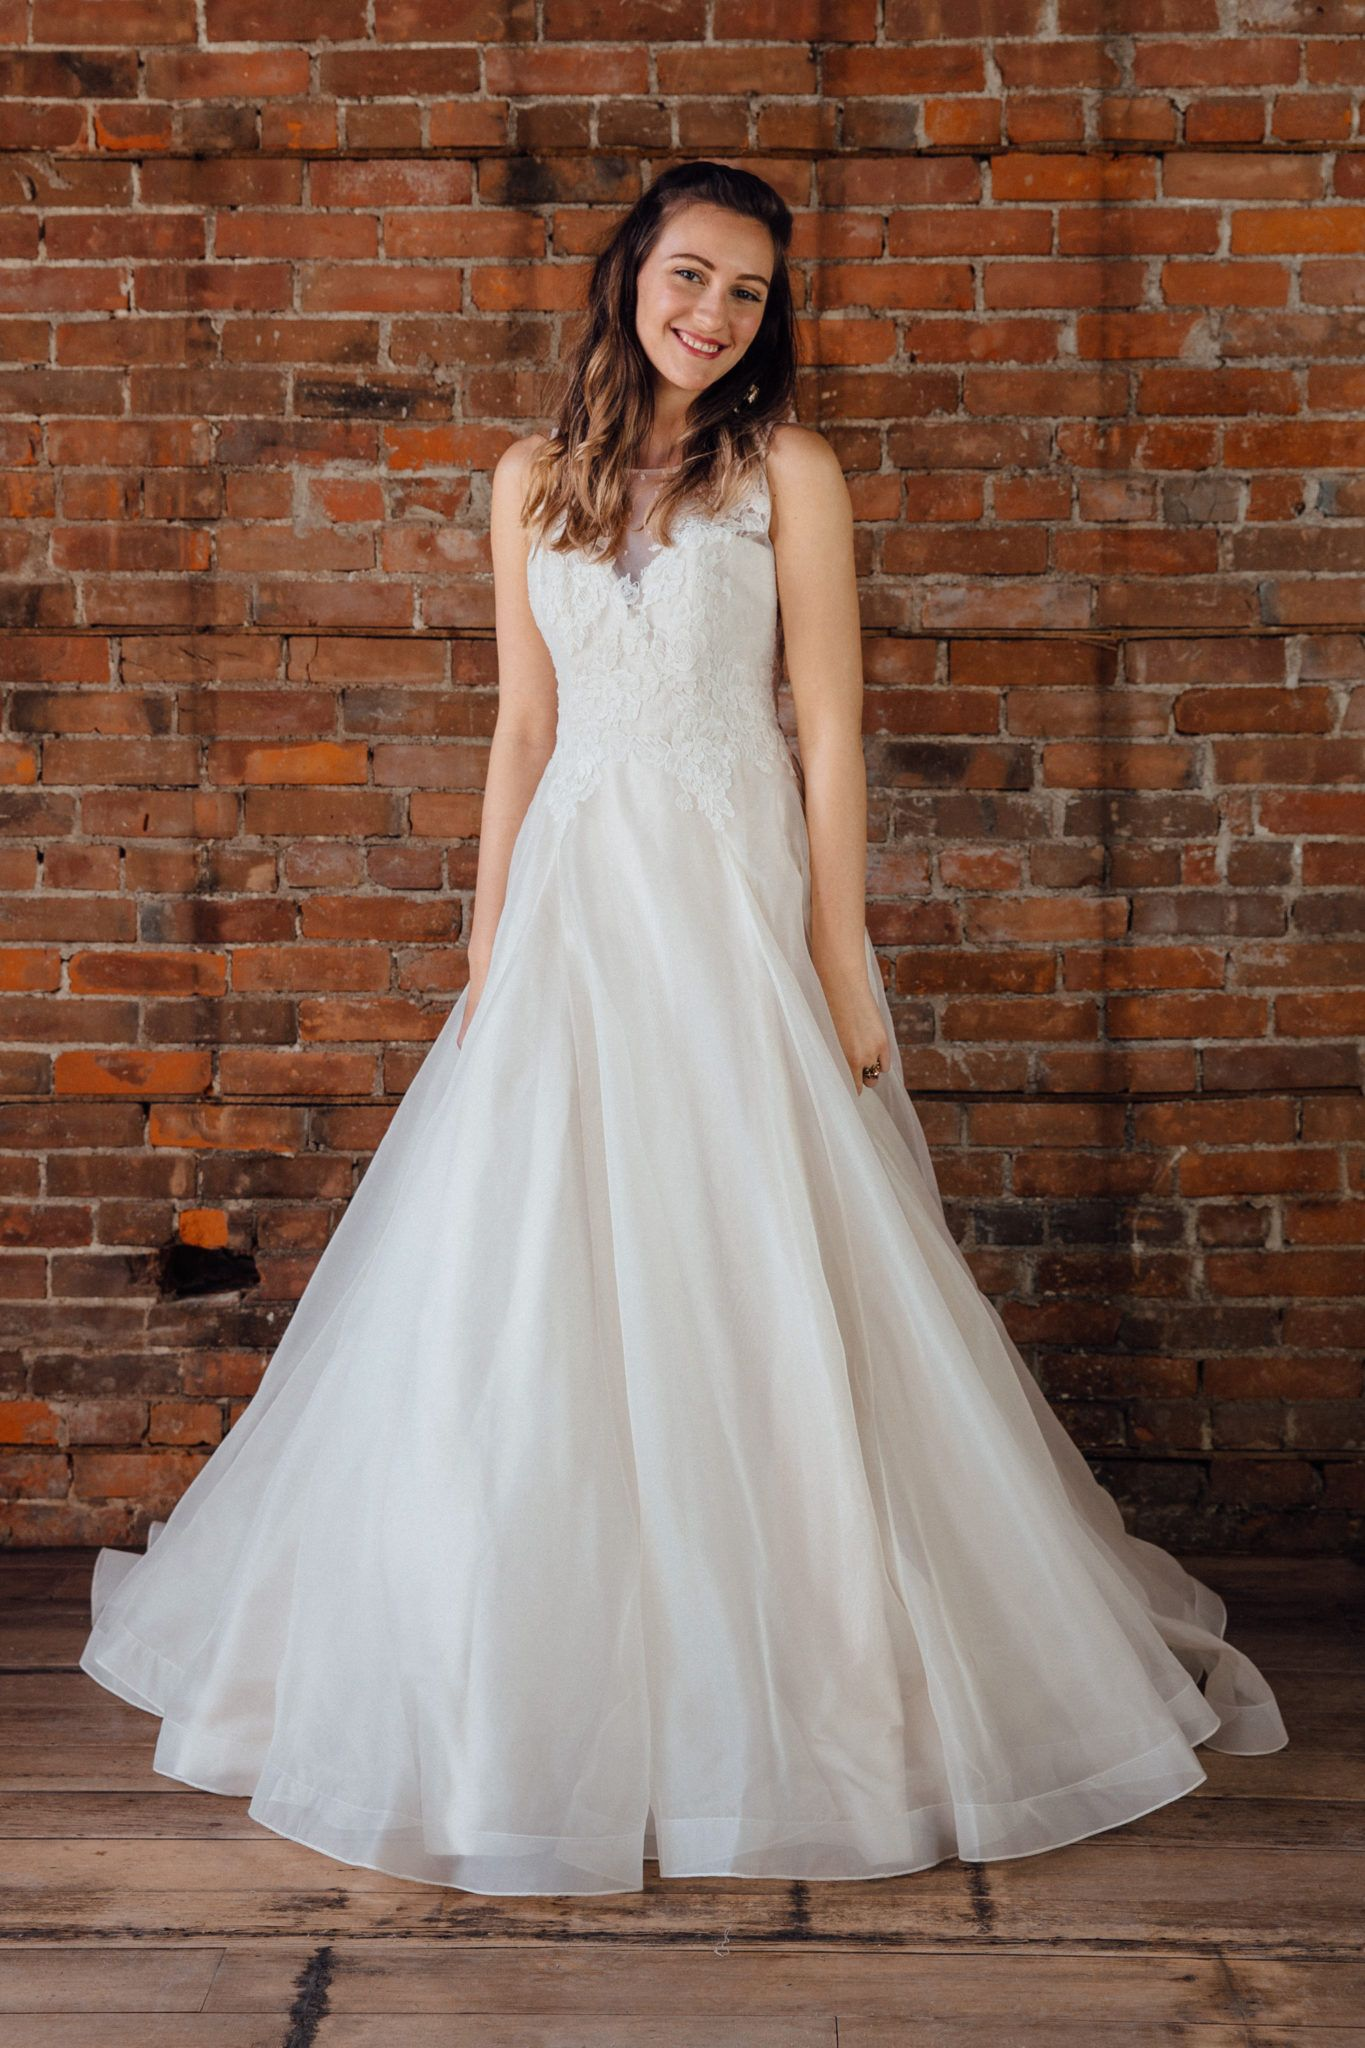 Violet Wedding Gown, Flourish Collection by Lea-Ann Belter Bridal ...